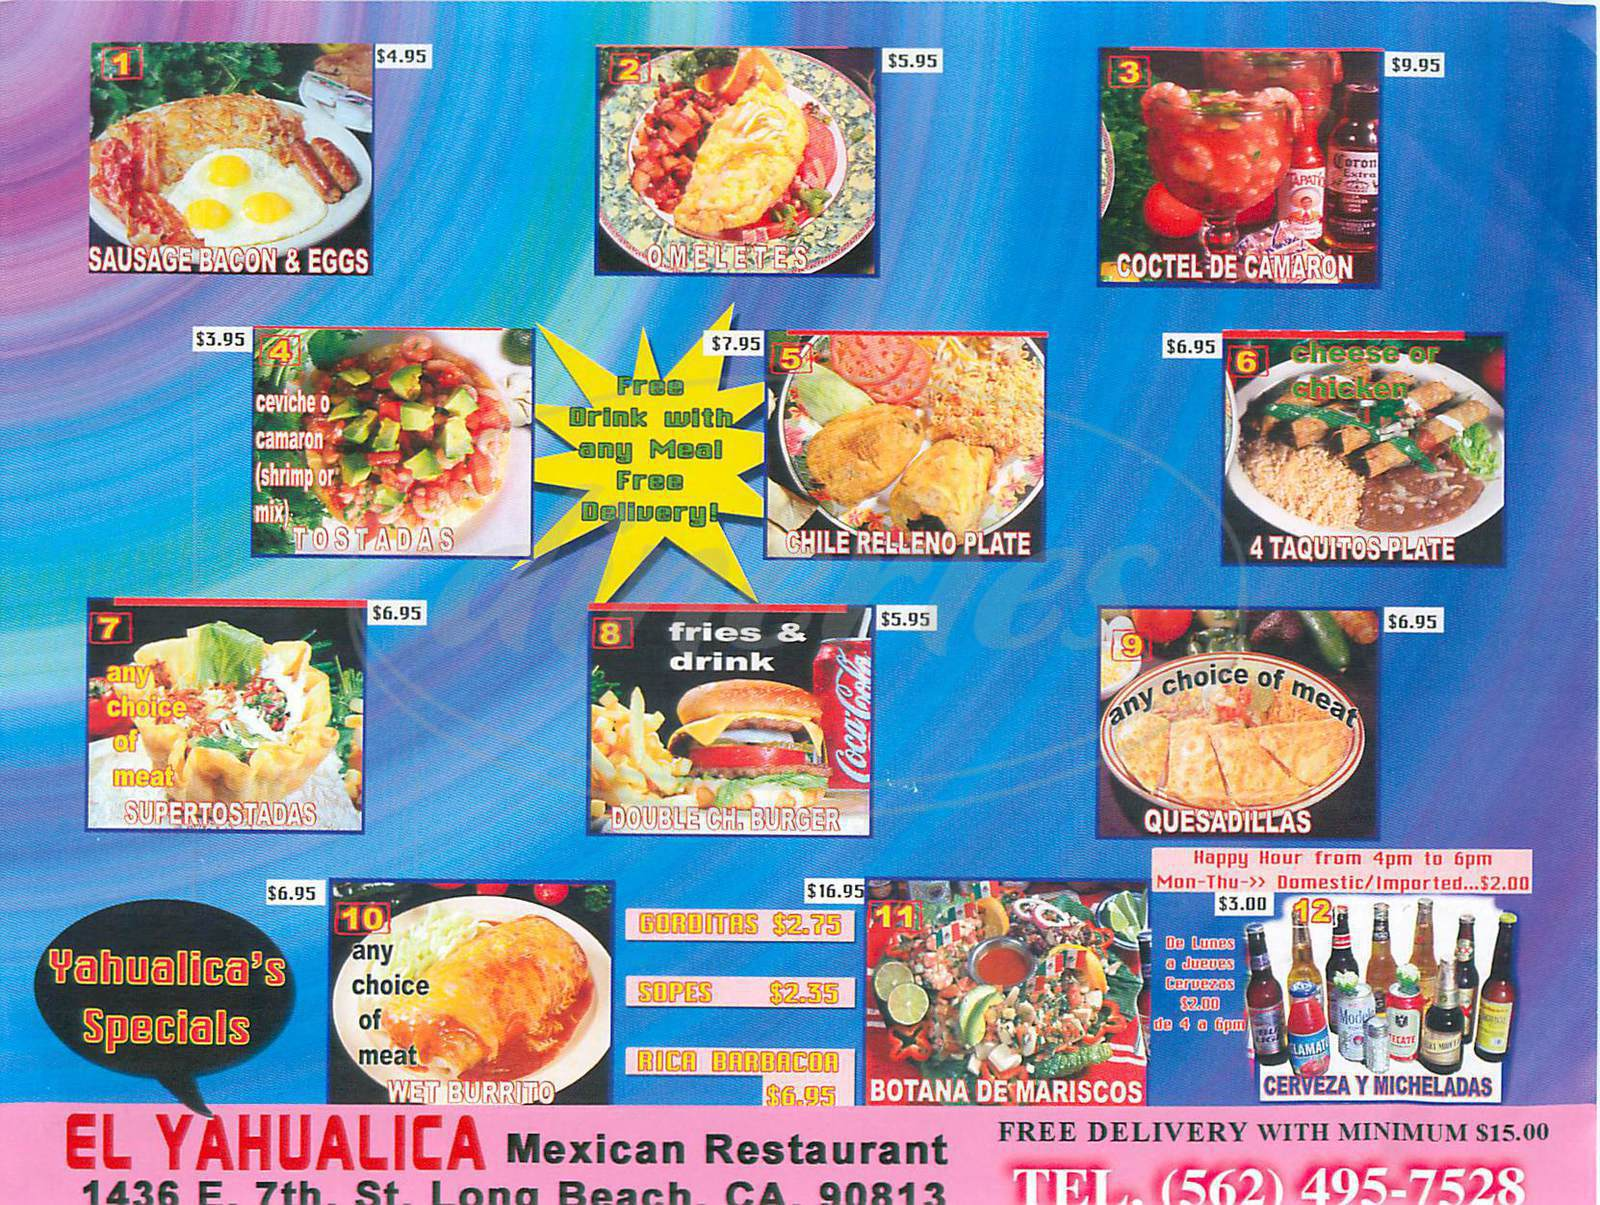 menu for El Yahualica